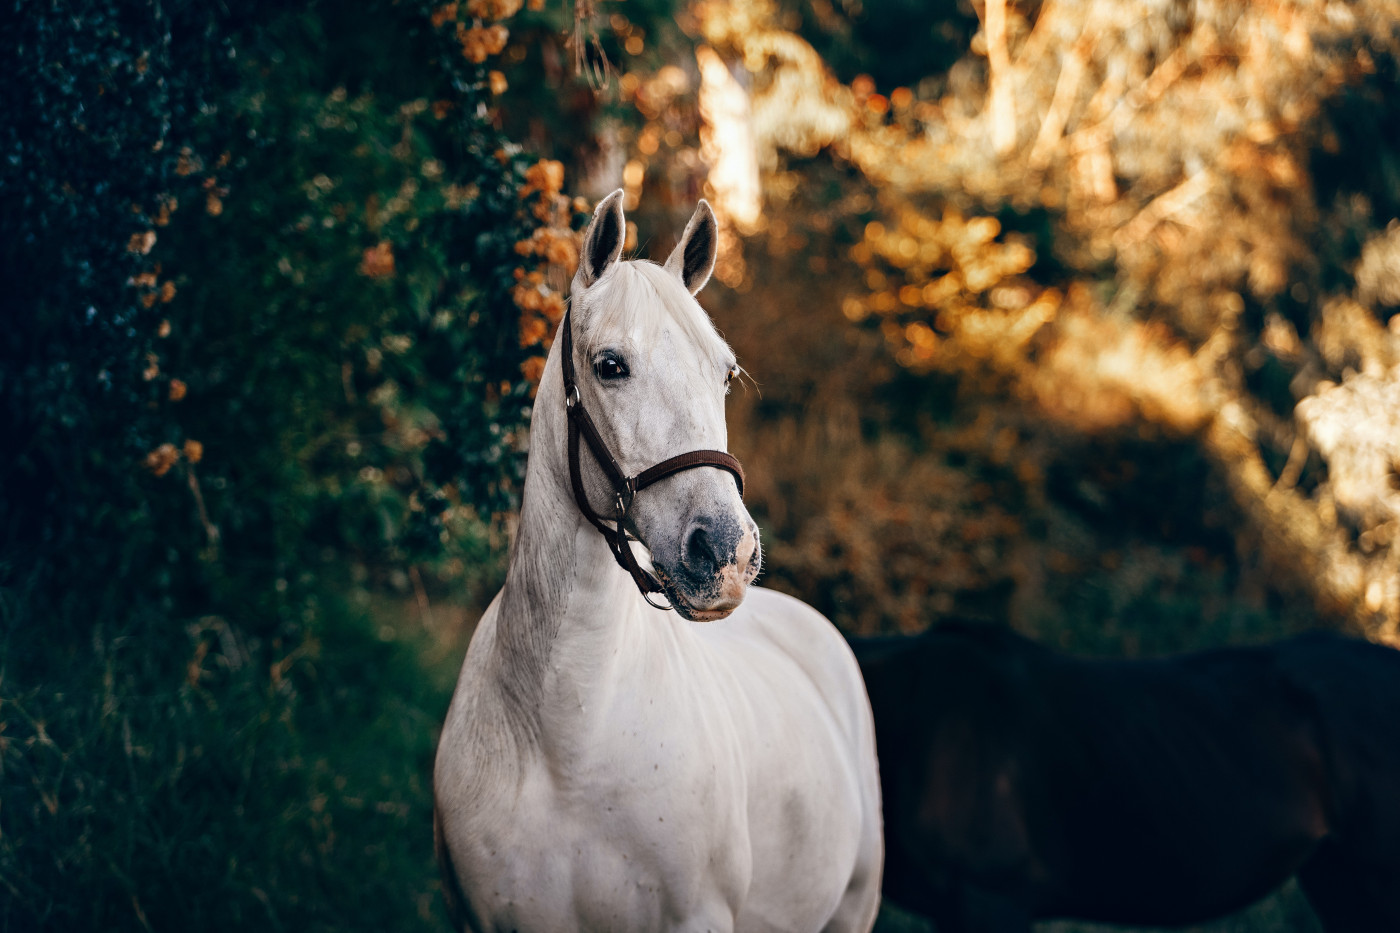 equine-assisted therapy (EAT)